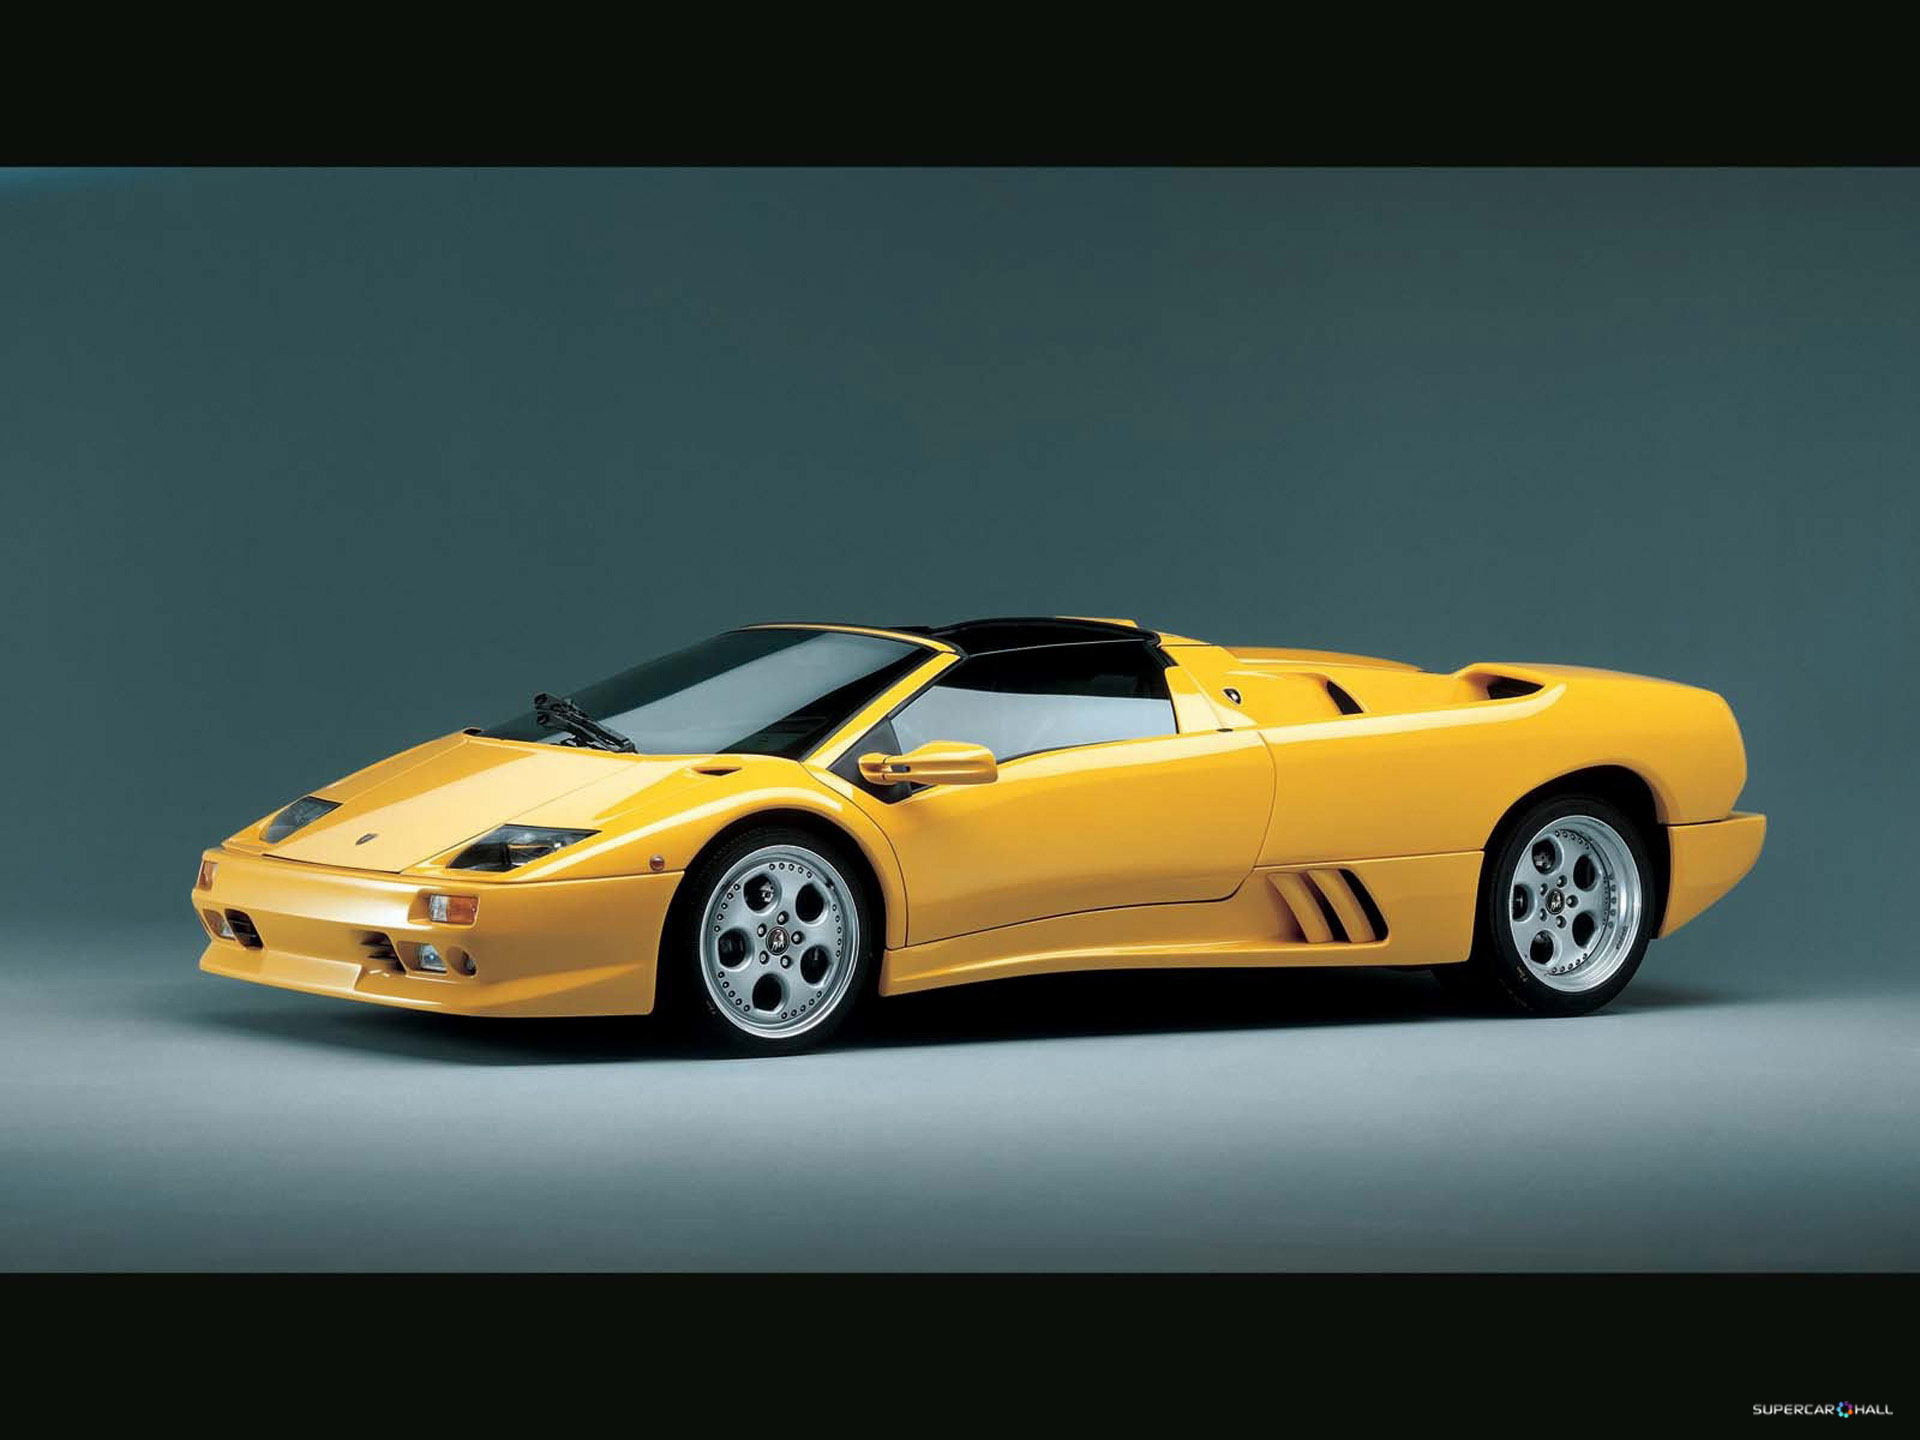 2017 Lamborghini Diablo photo - 4